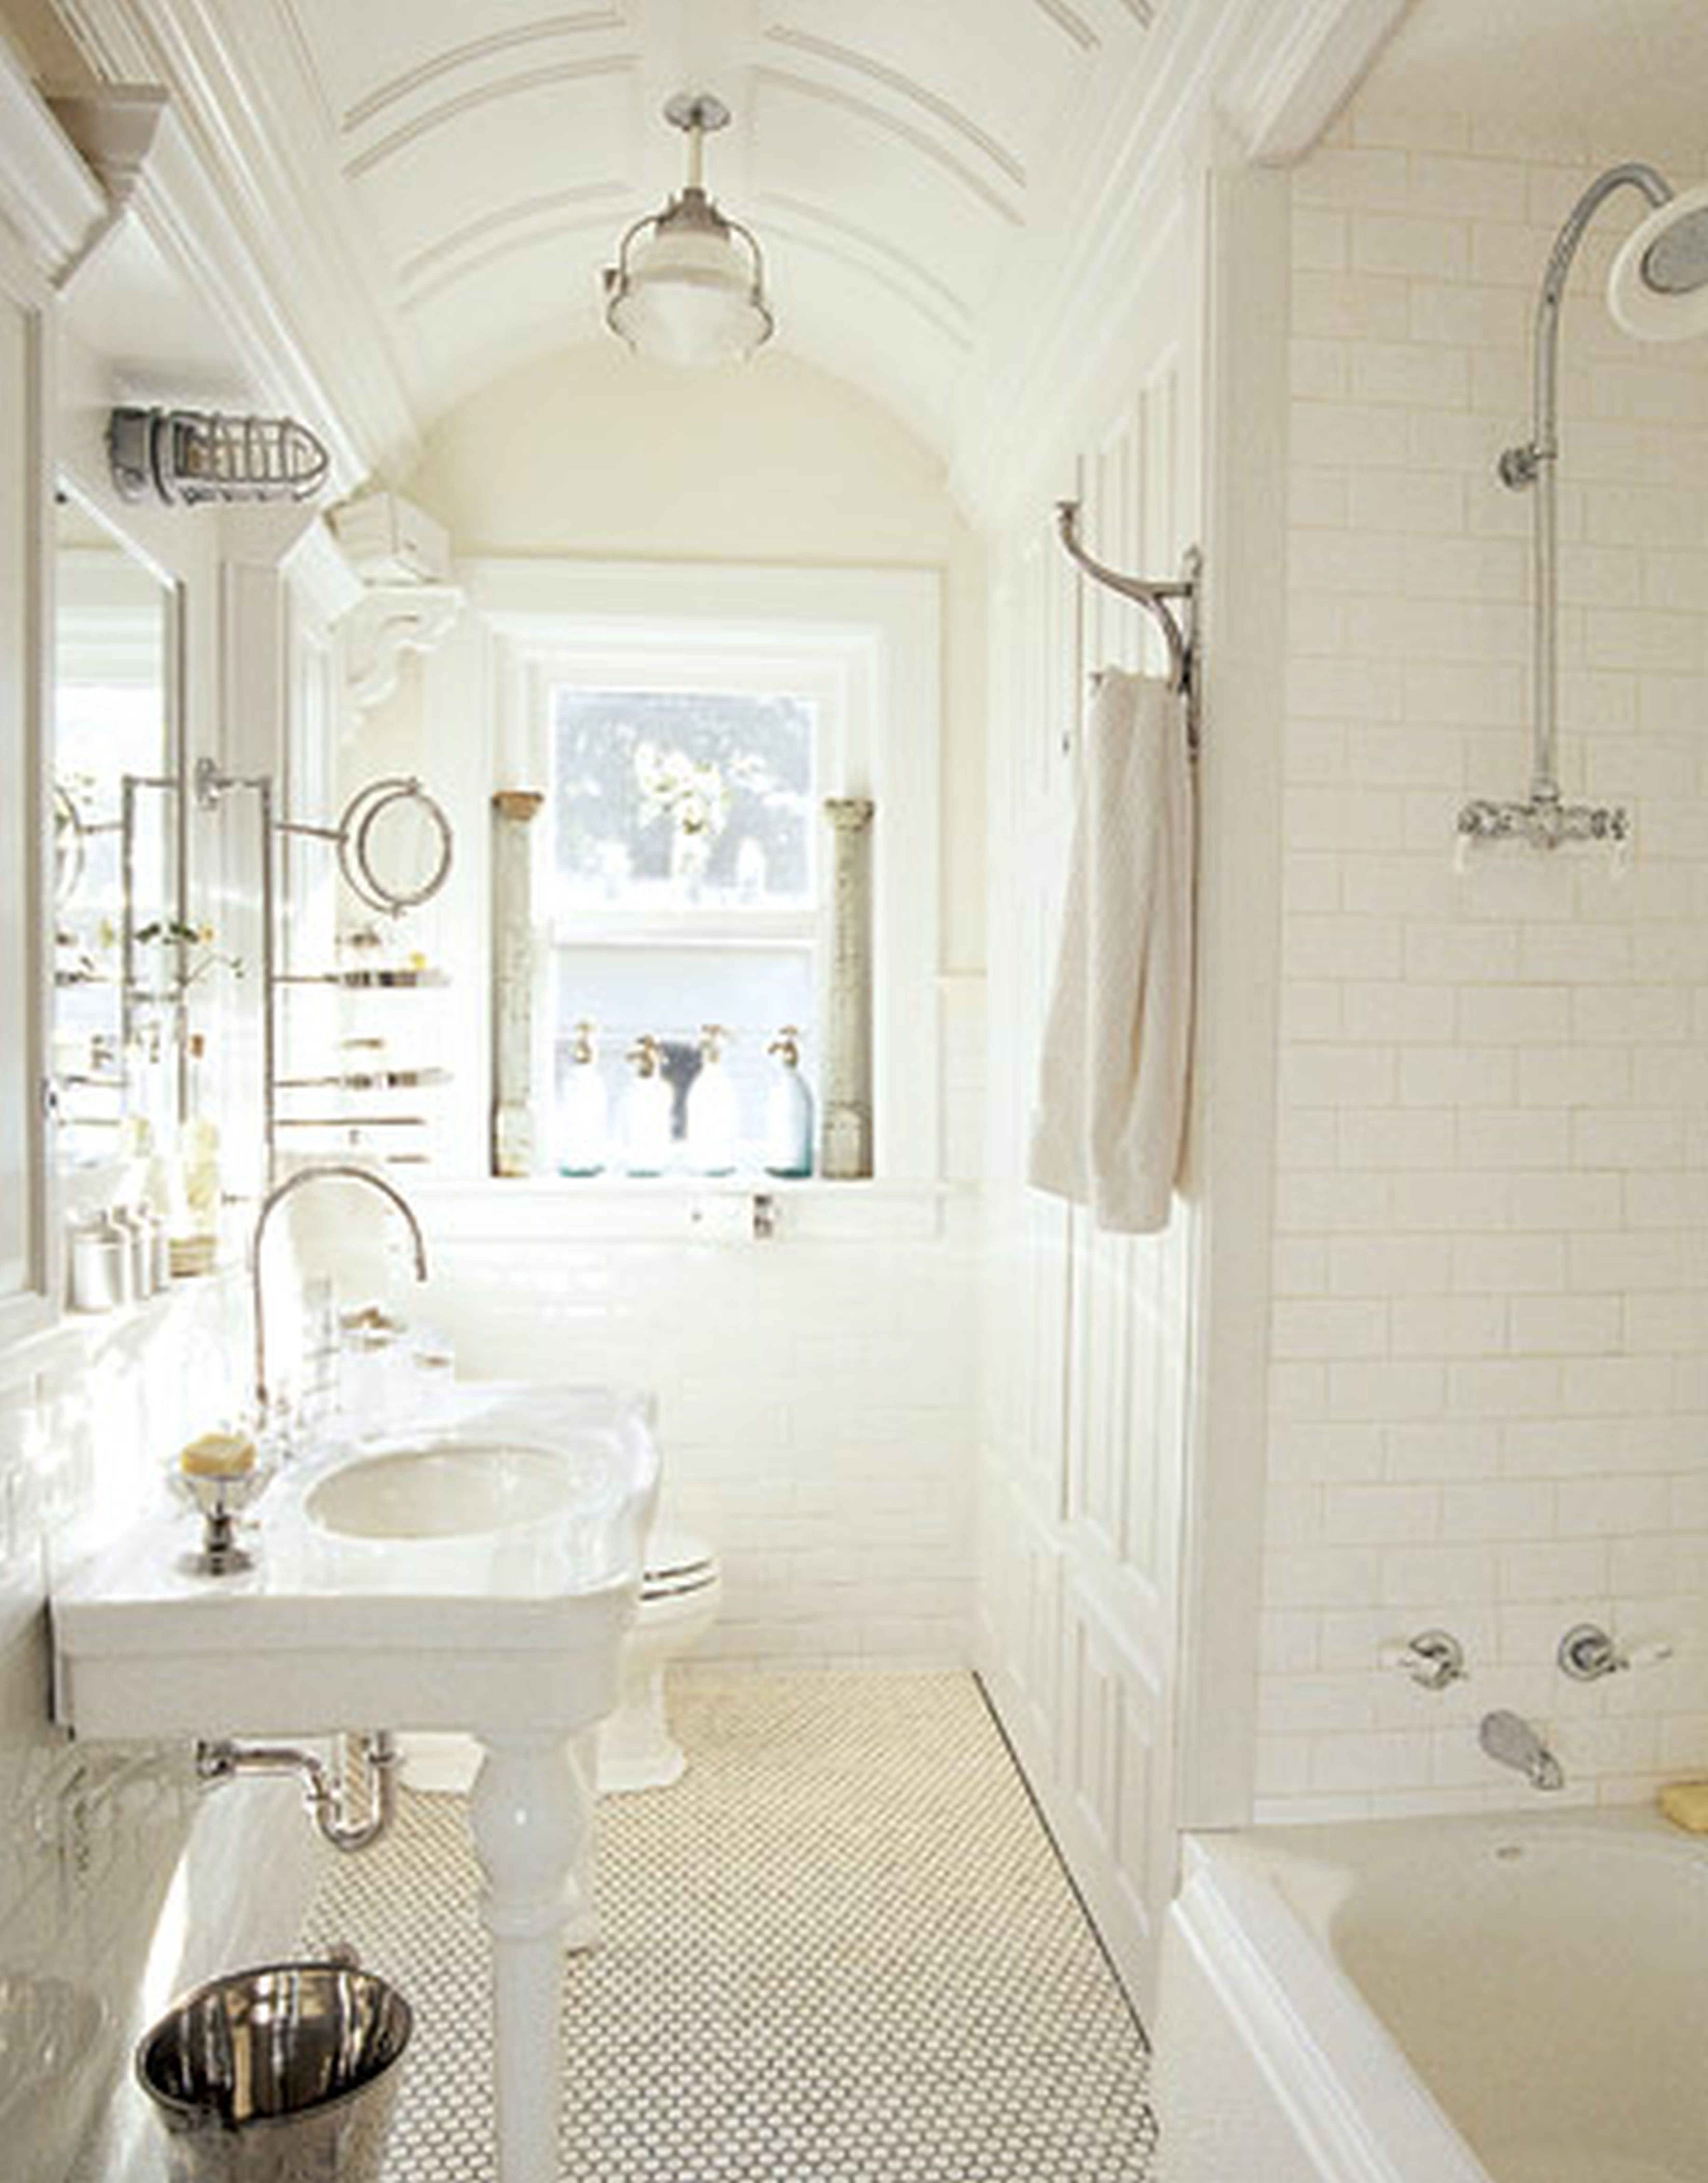 30 great ideas and pictures for bathroom tile gallery ... on Floral Tile Bathroom Ideas  id=61110